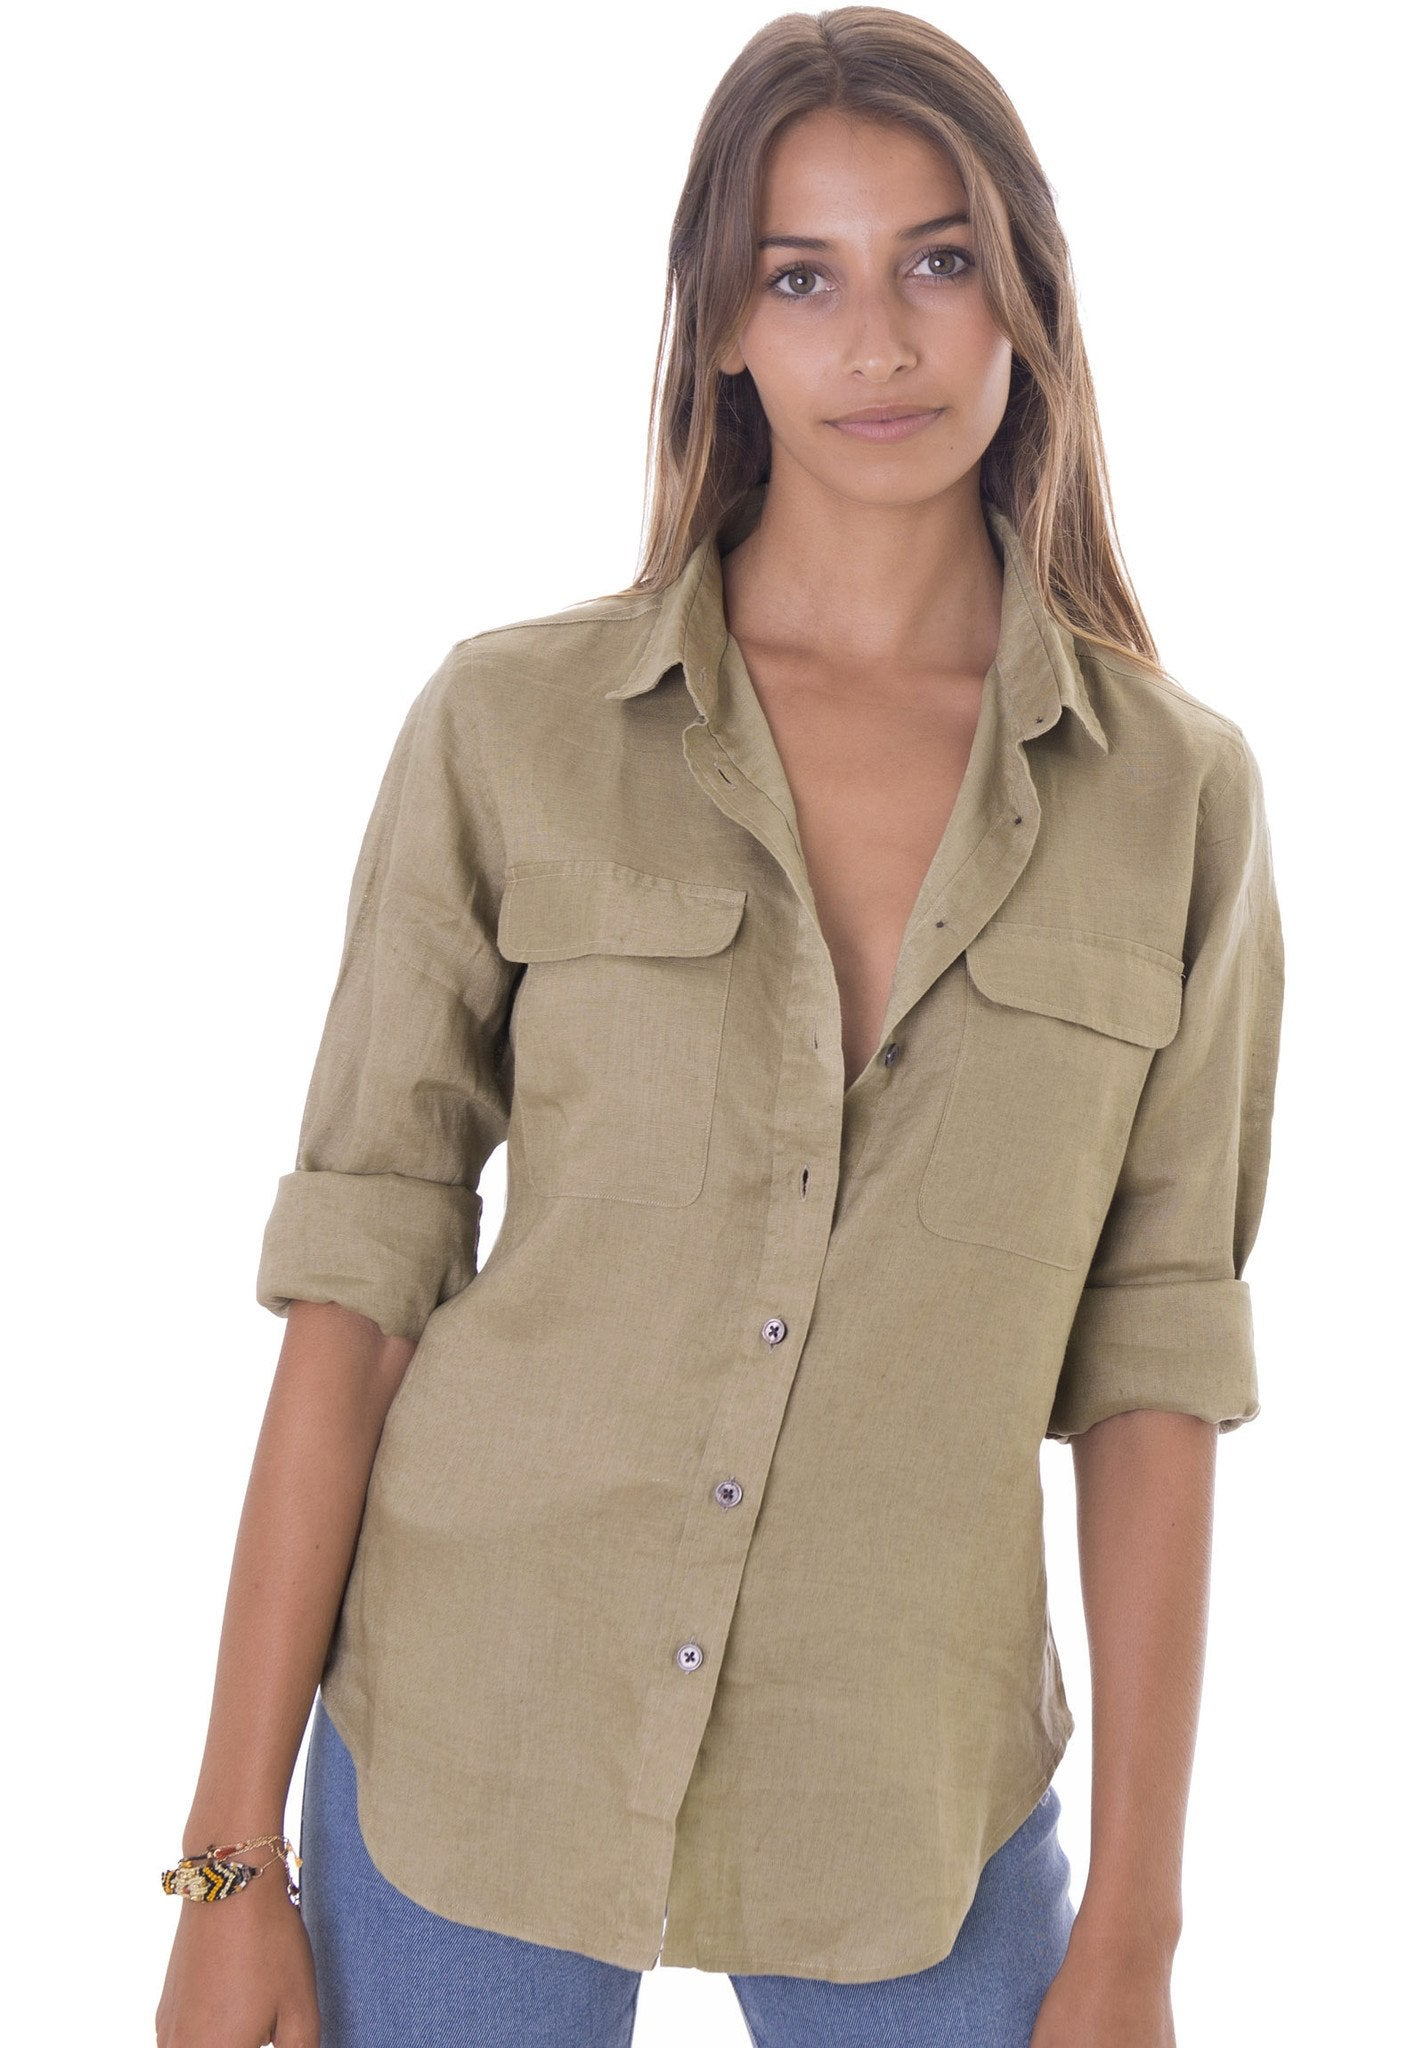 Fill your drawers with women's Khaki t-shirts from Zazzle. Shop all of our amazing designs, styles & sizes!